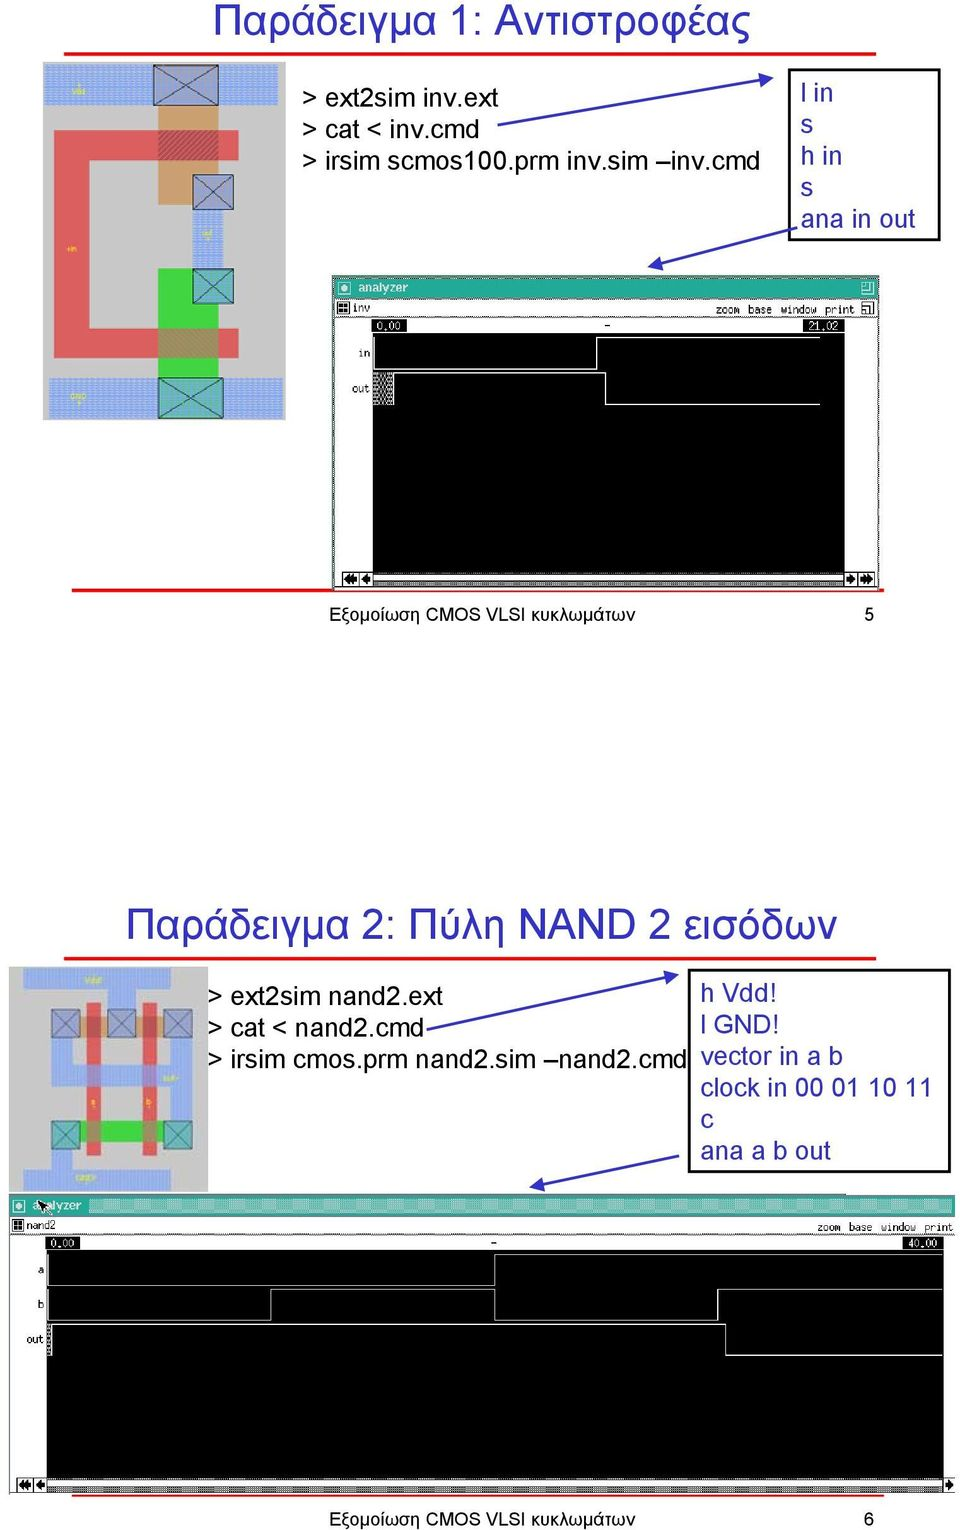 cmd l in s h in s ana in out Εξοµοίωση CMOS VLSI κυκλωµάτων 5 2: Πύλη NAND 2 εισόδων